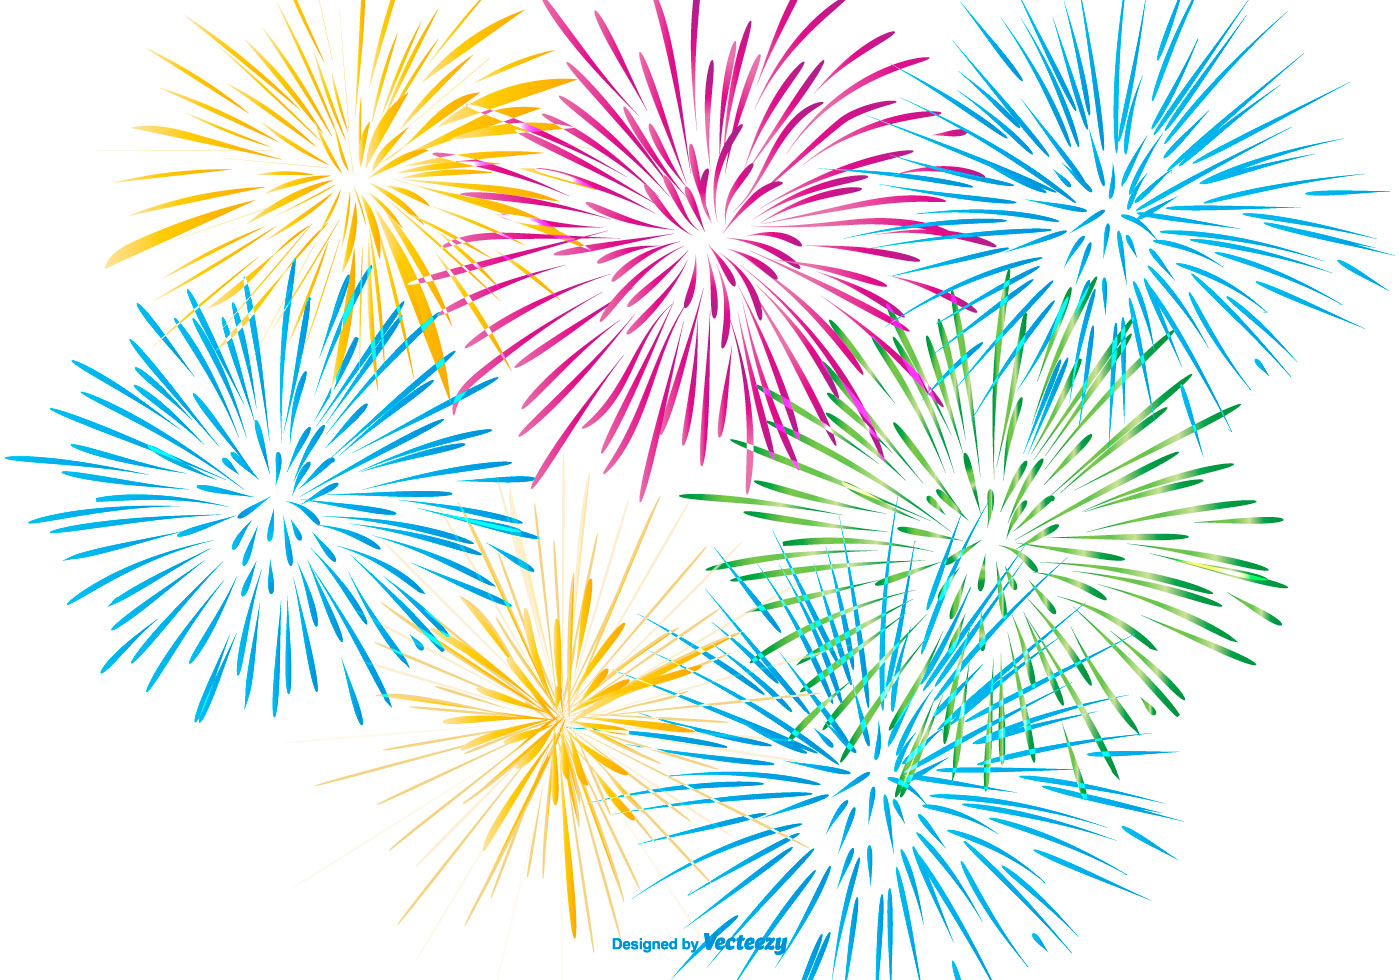 Colored Fireworks on White Background - Download Free ...